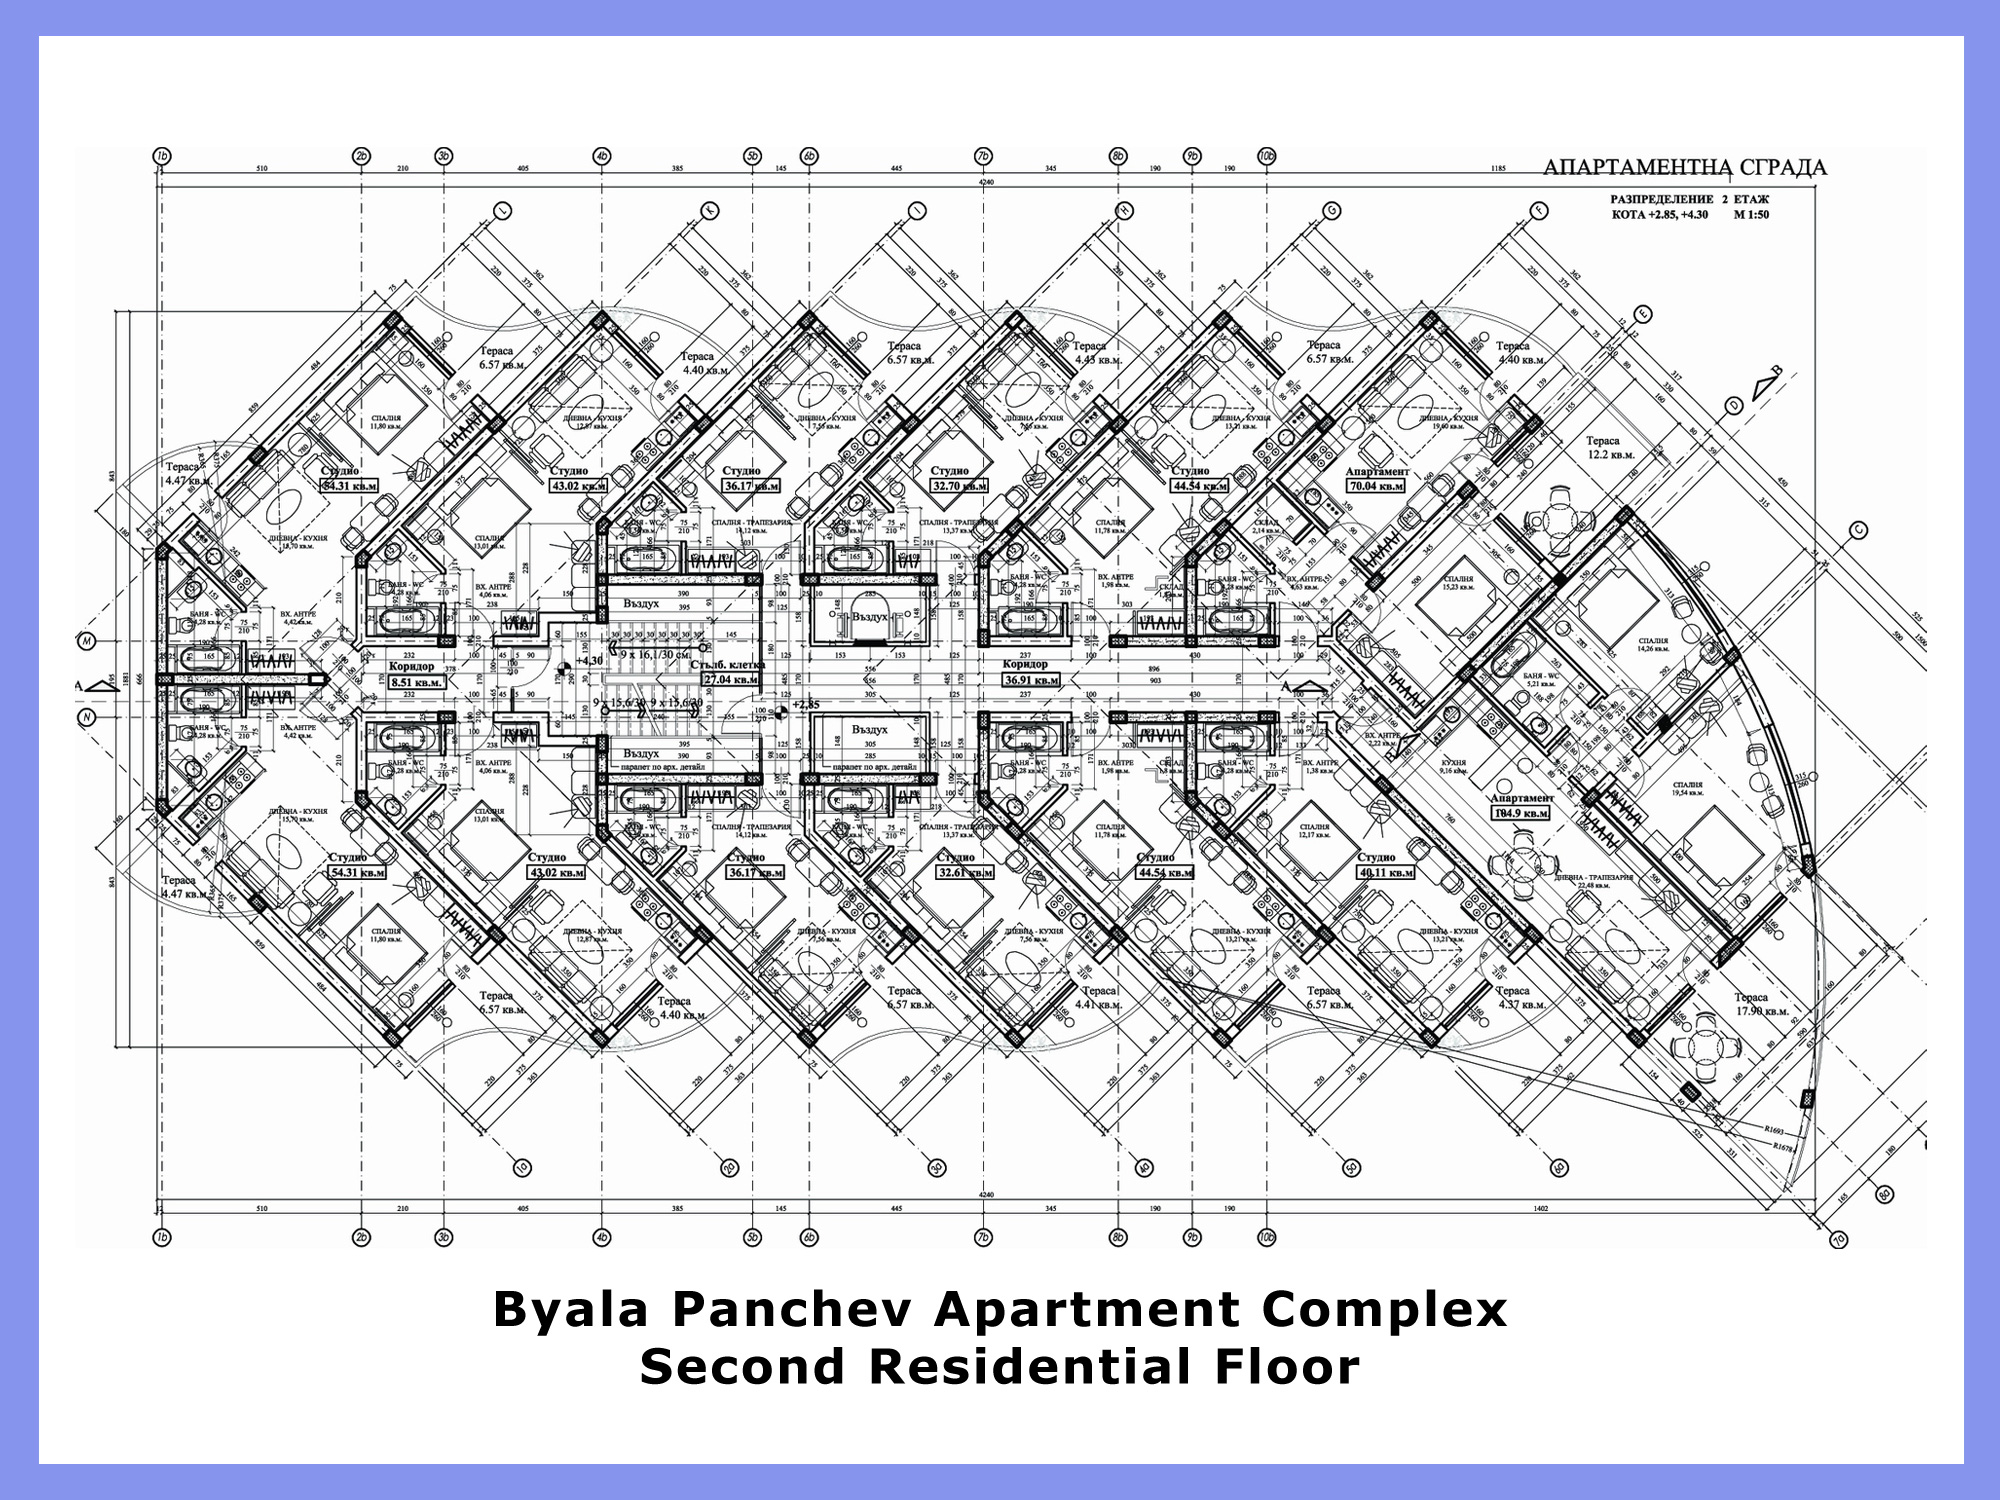 Byala panchev apartment complex for Apartment plans 6 units